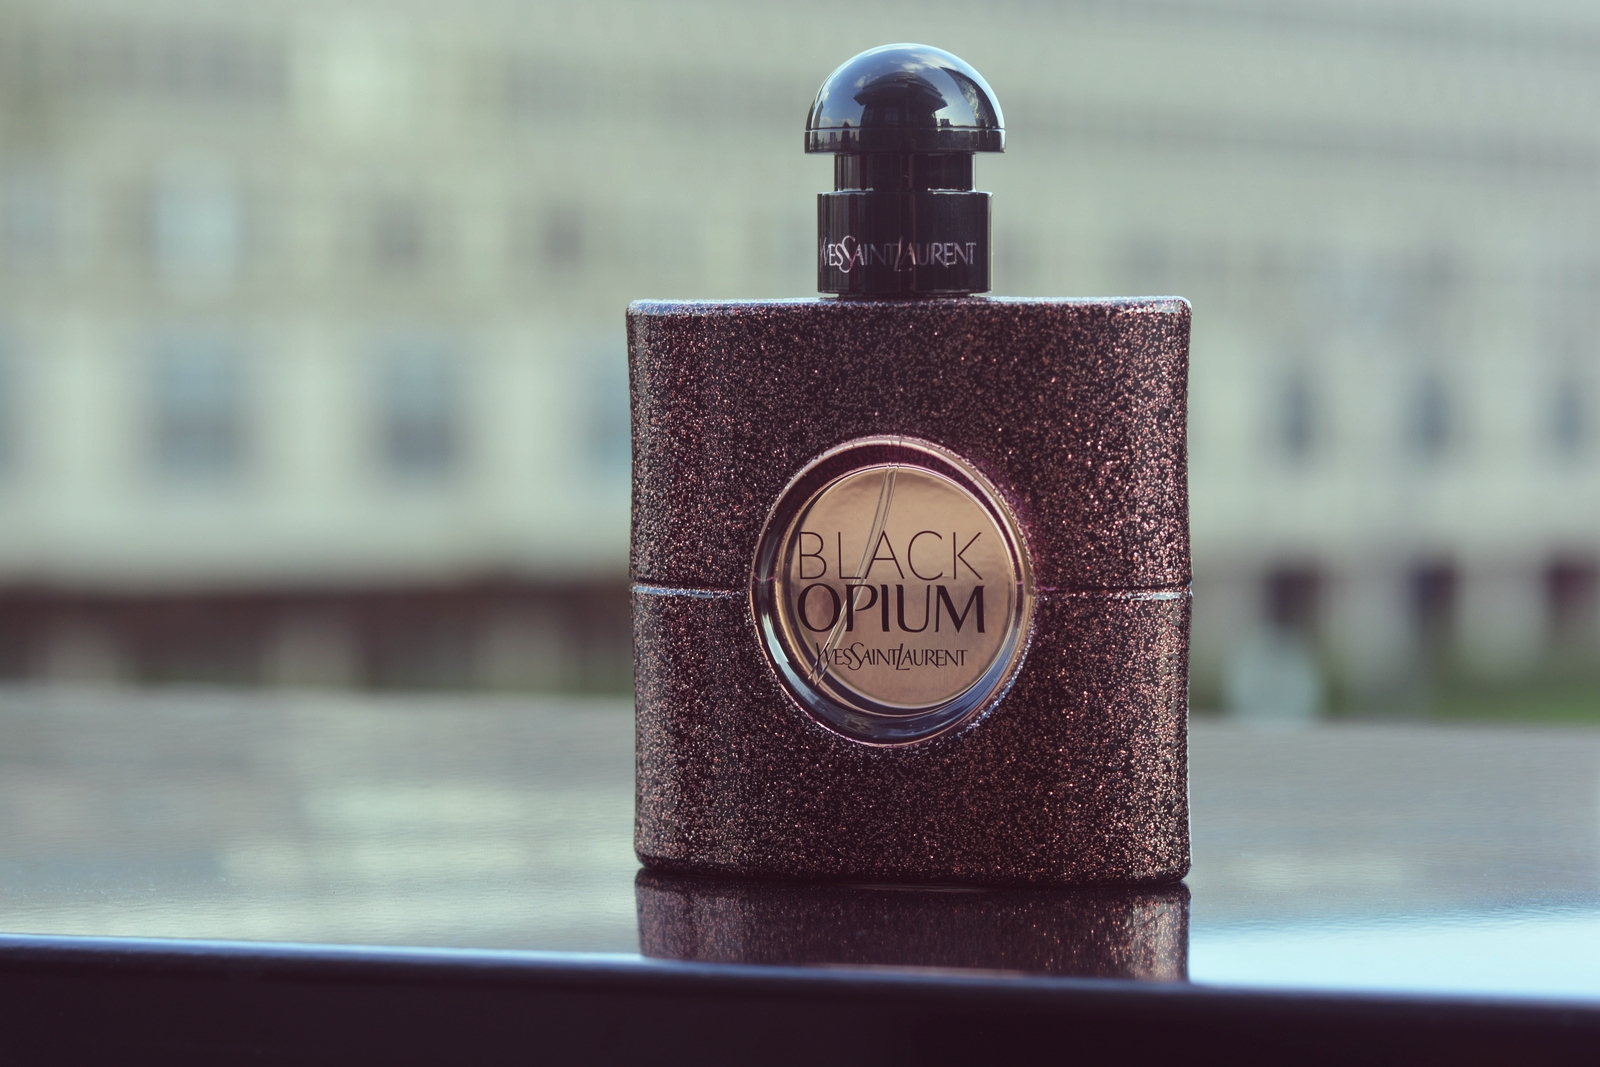 YSL Black Opium , ysl beauty , culture and magazine, Beauty reporter , YSL